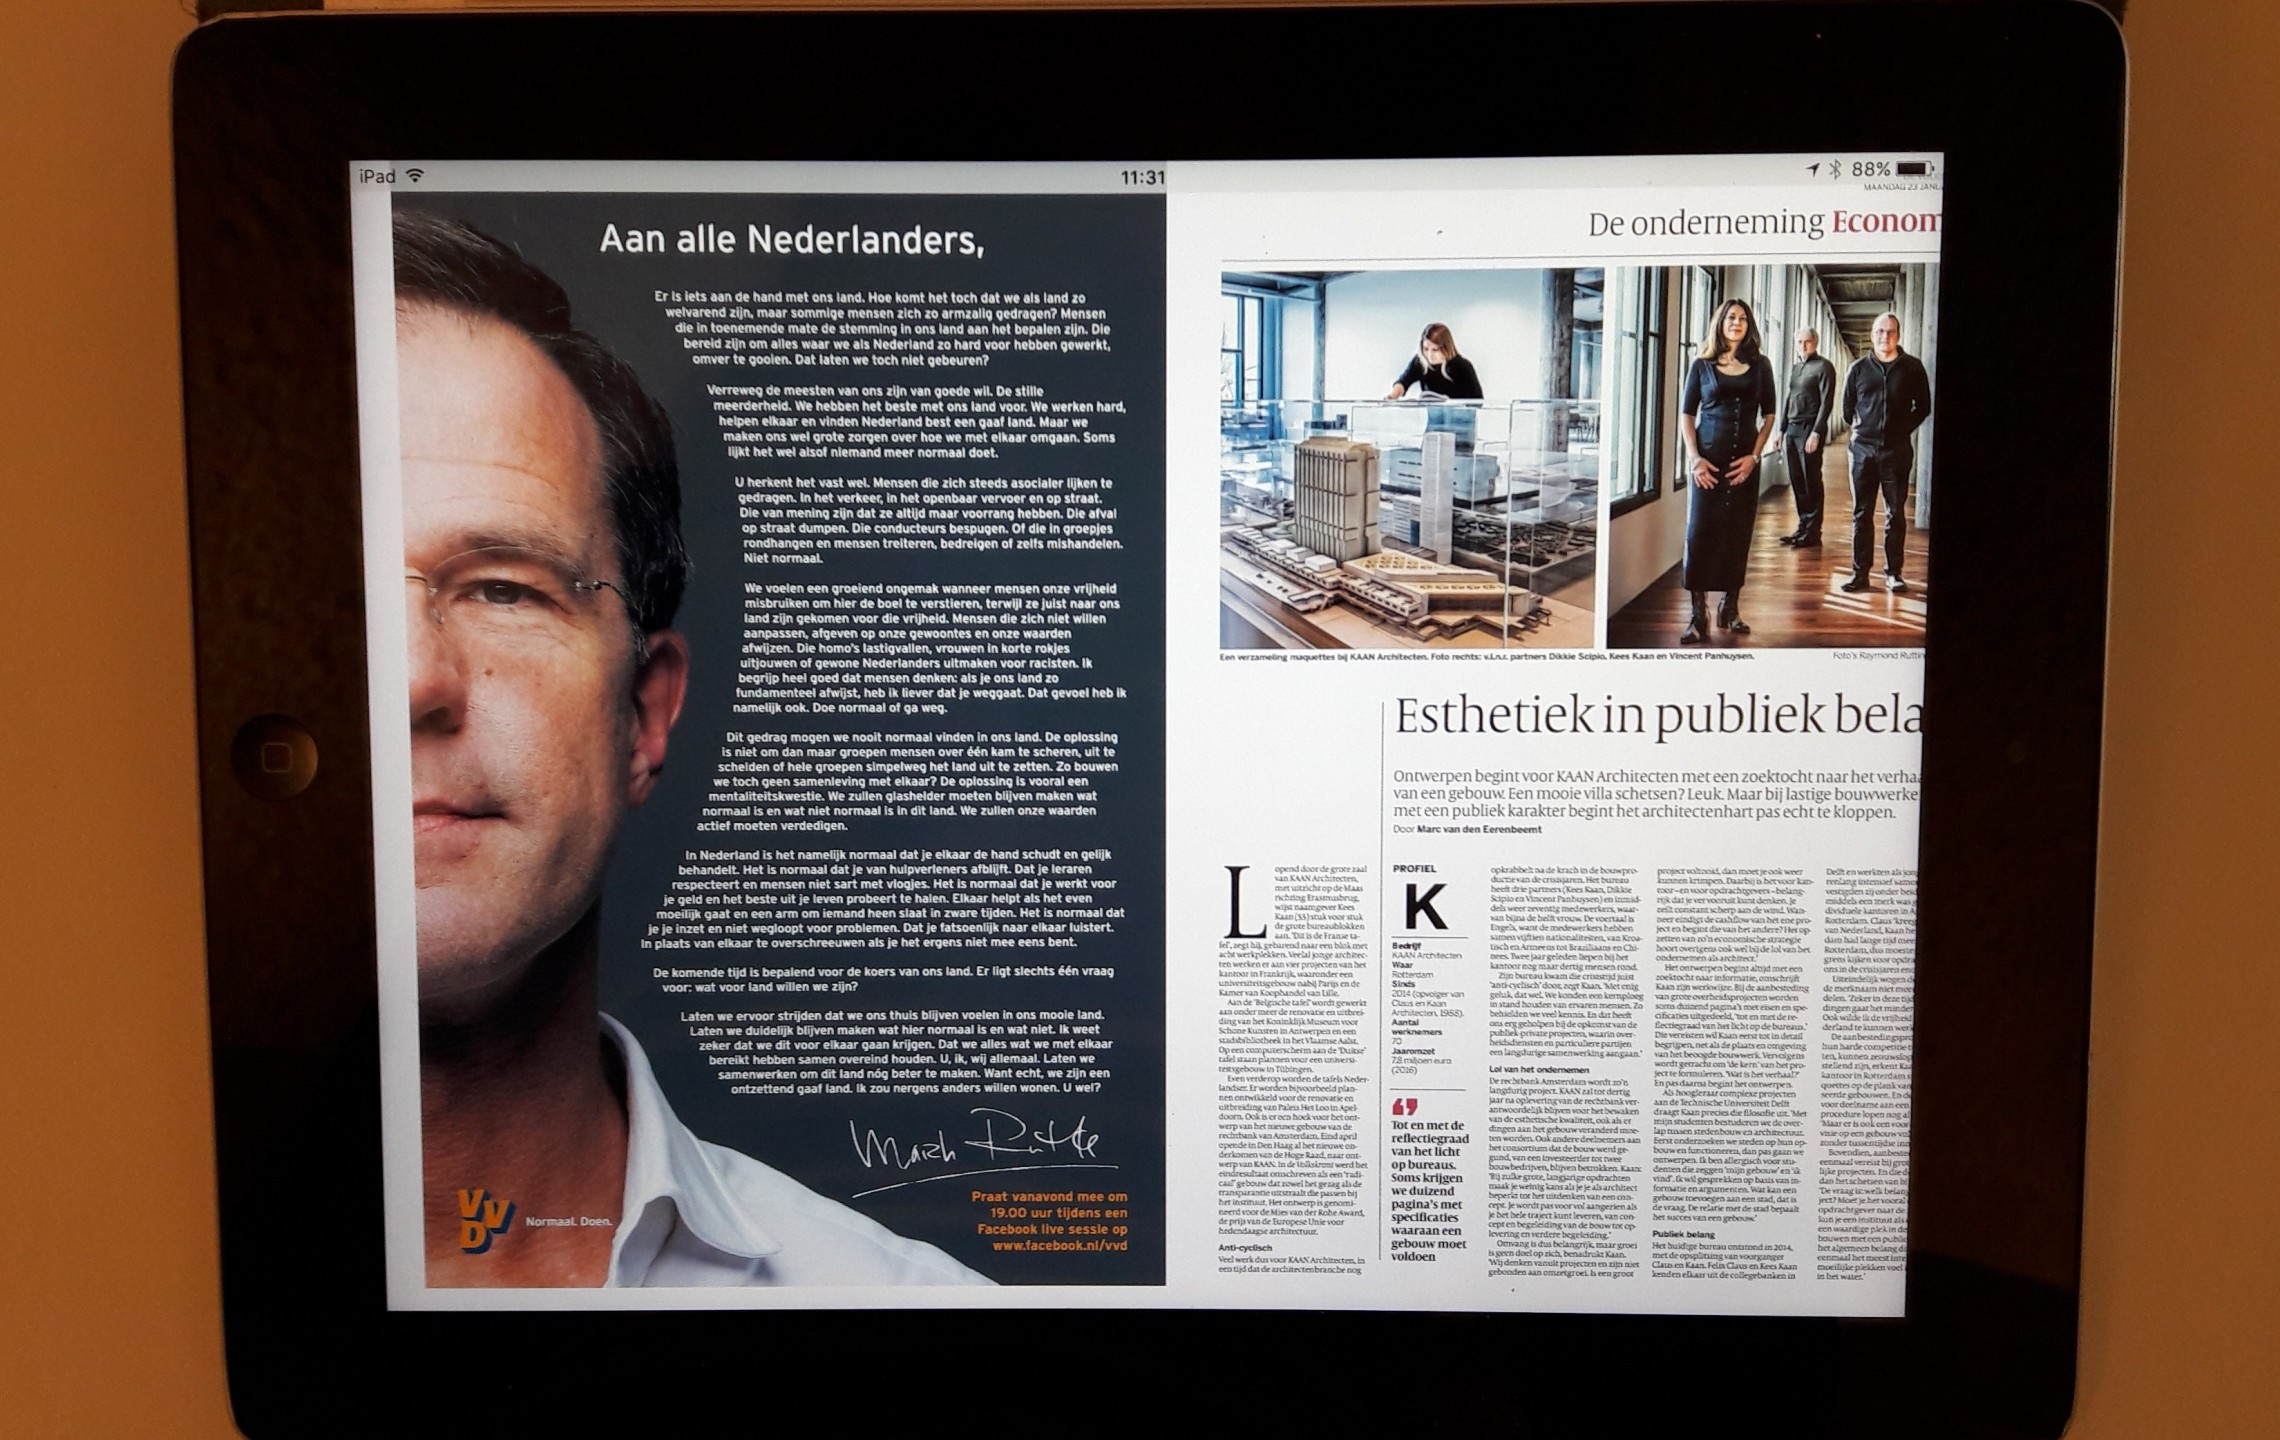 Advertentie Rutte in Volkskrant